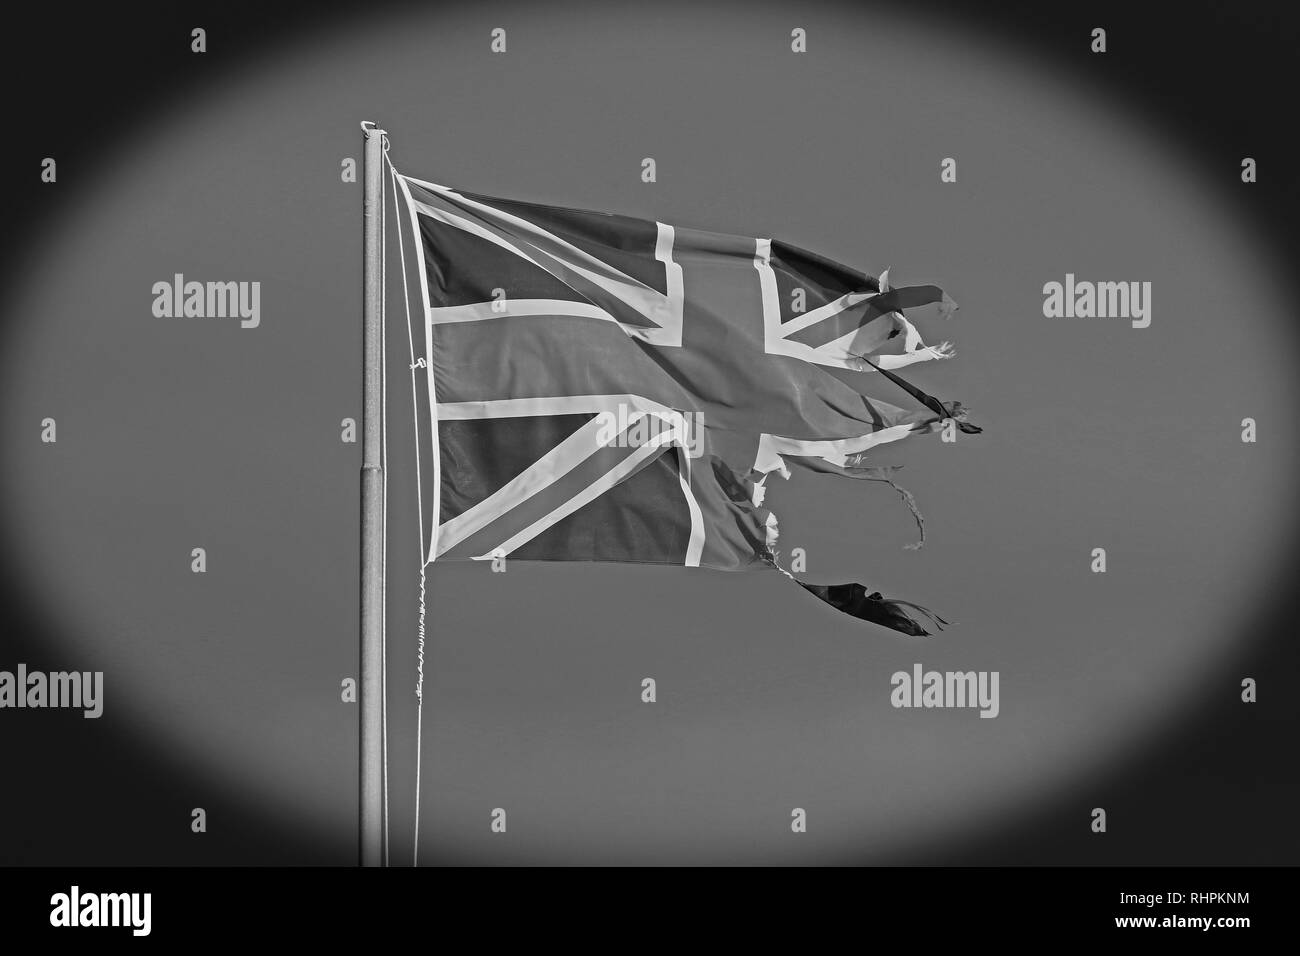 black and white or monochrome image of a British flag or Union Jack torn and tattered flying by the sea in Italy symbol of the Brexit disaster - Stock Image